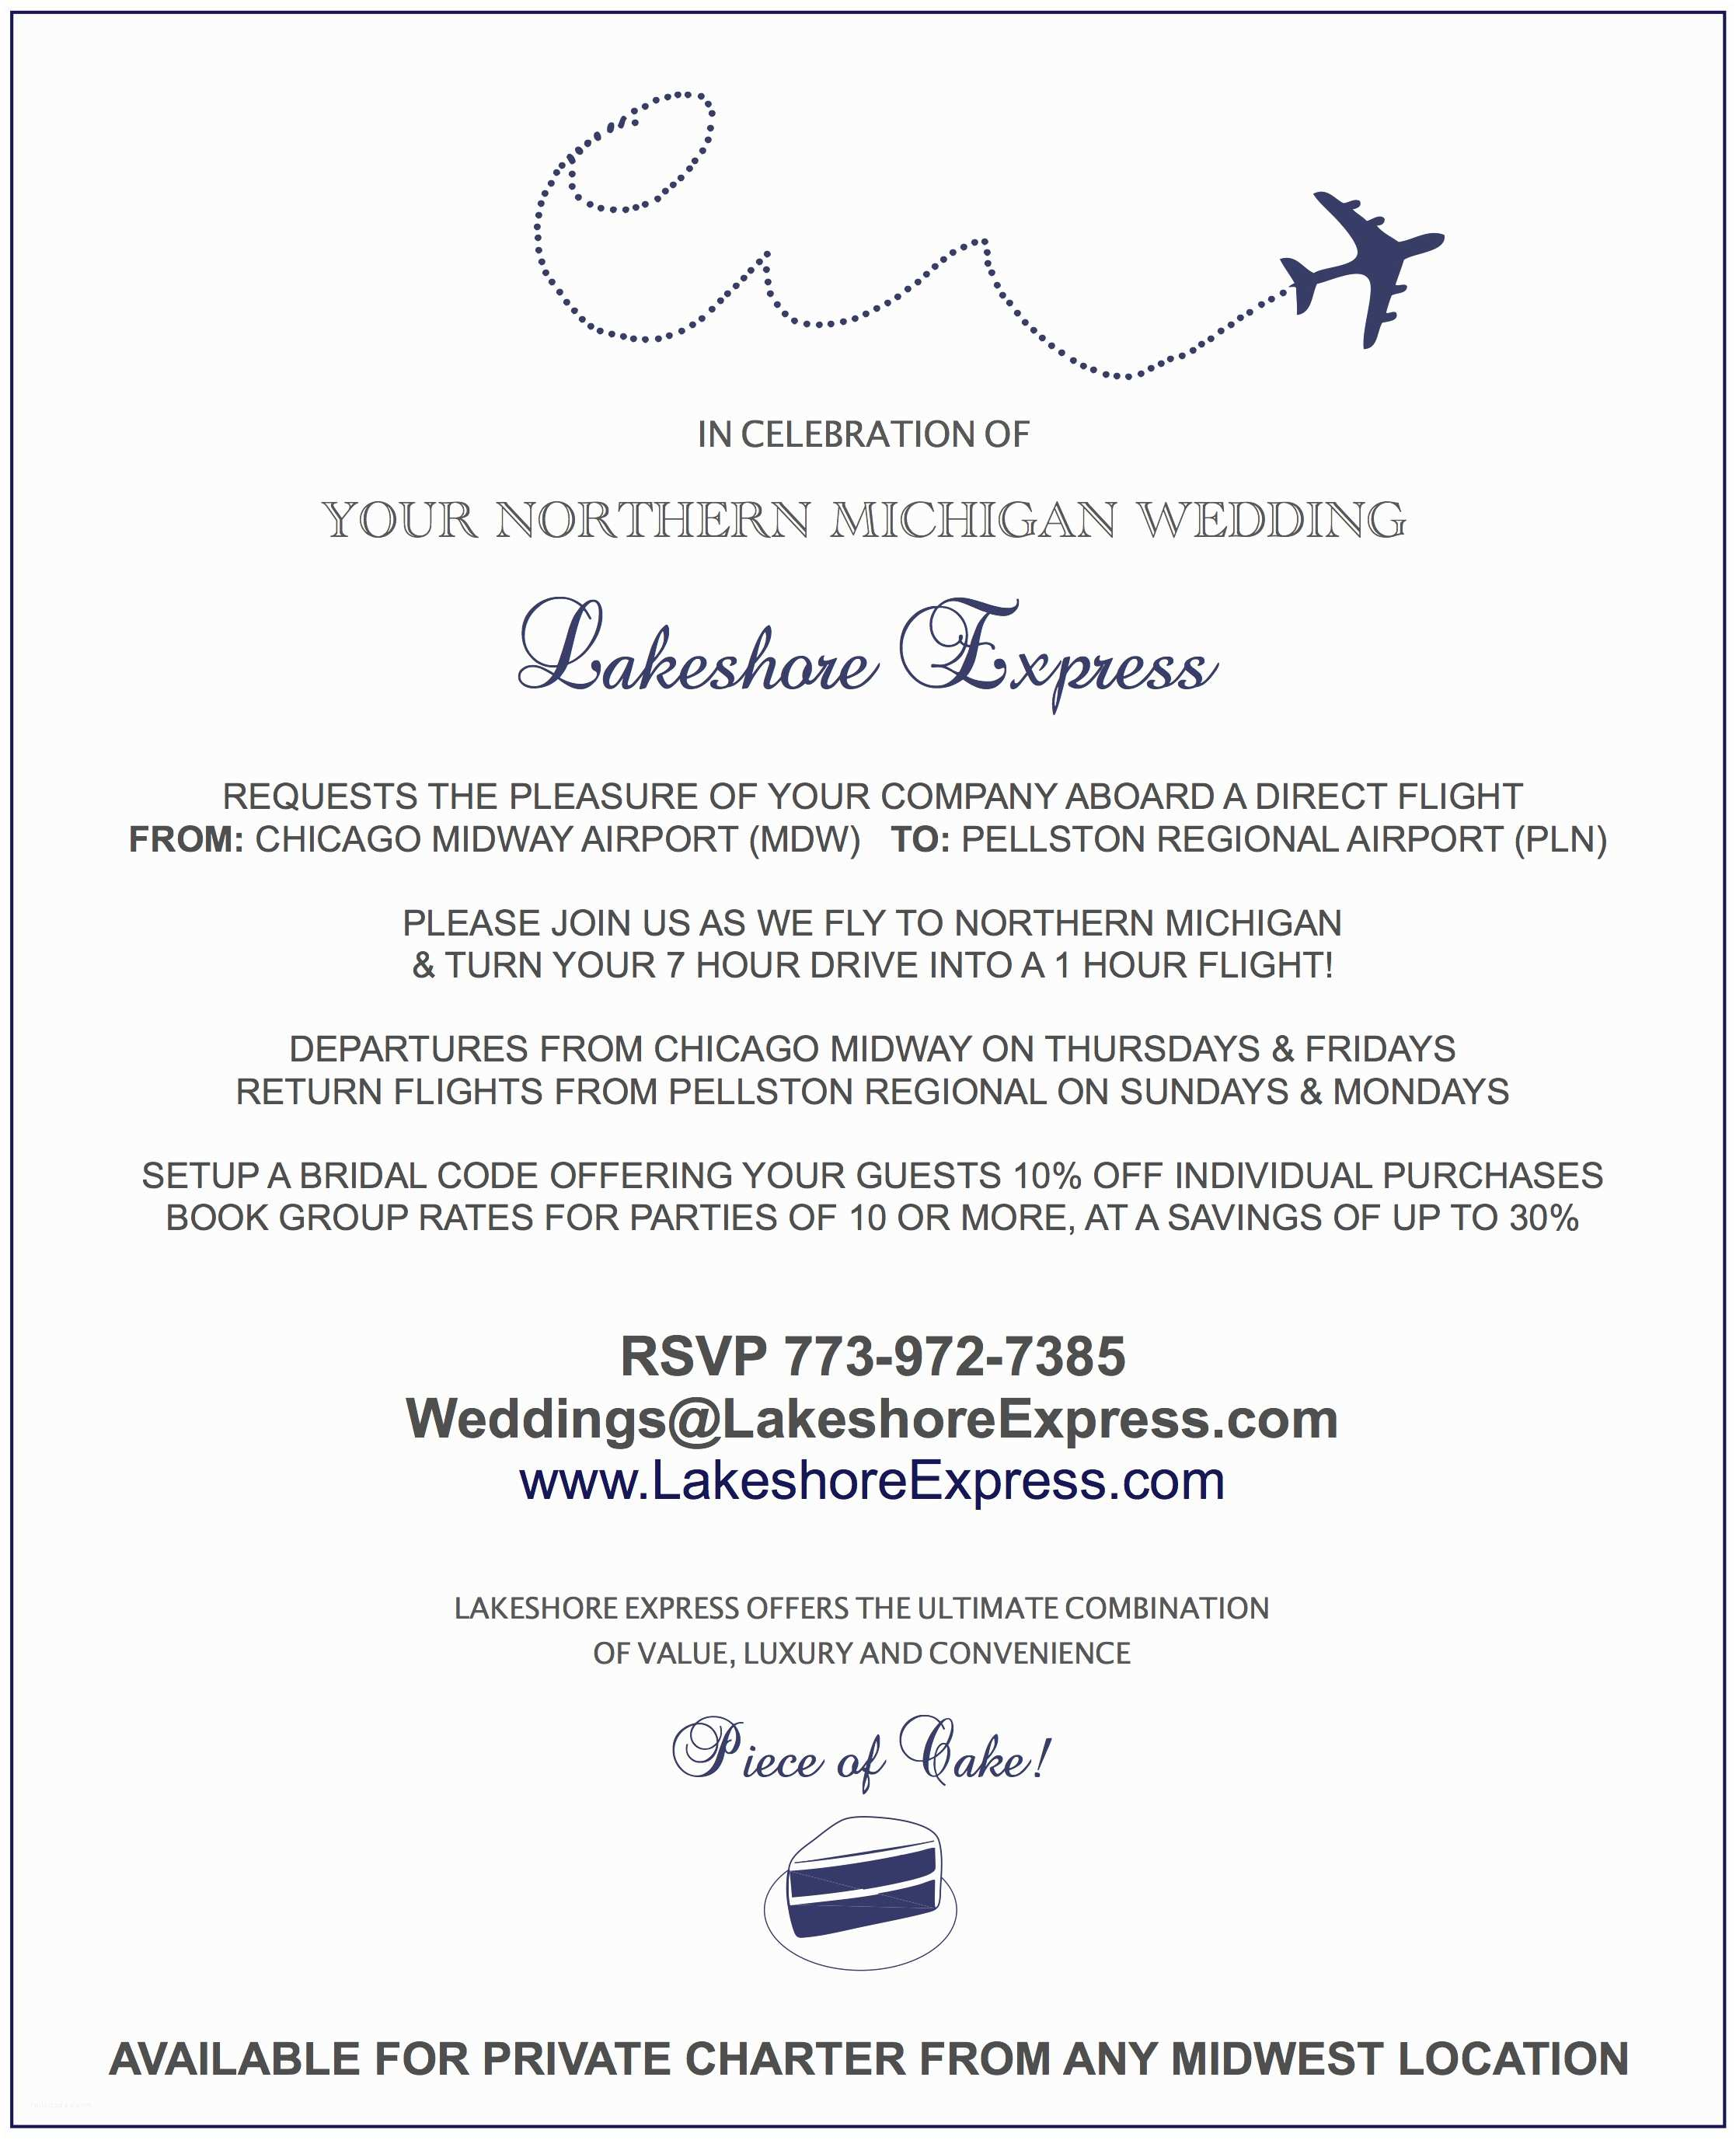 Wedding Invitation Email Make Traveling to Your northern Michigan Wedding A Piece